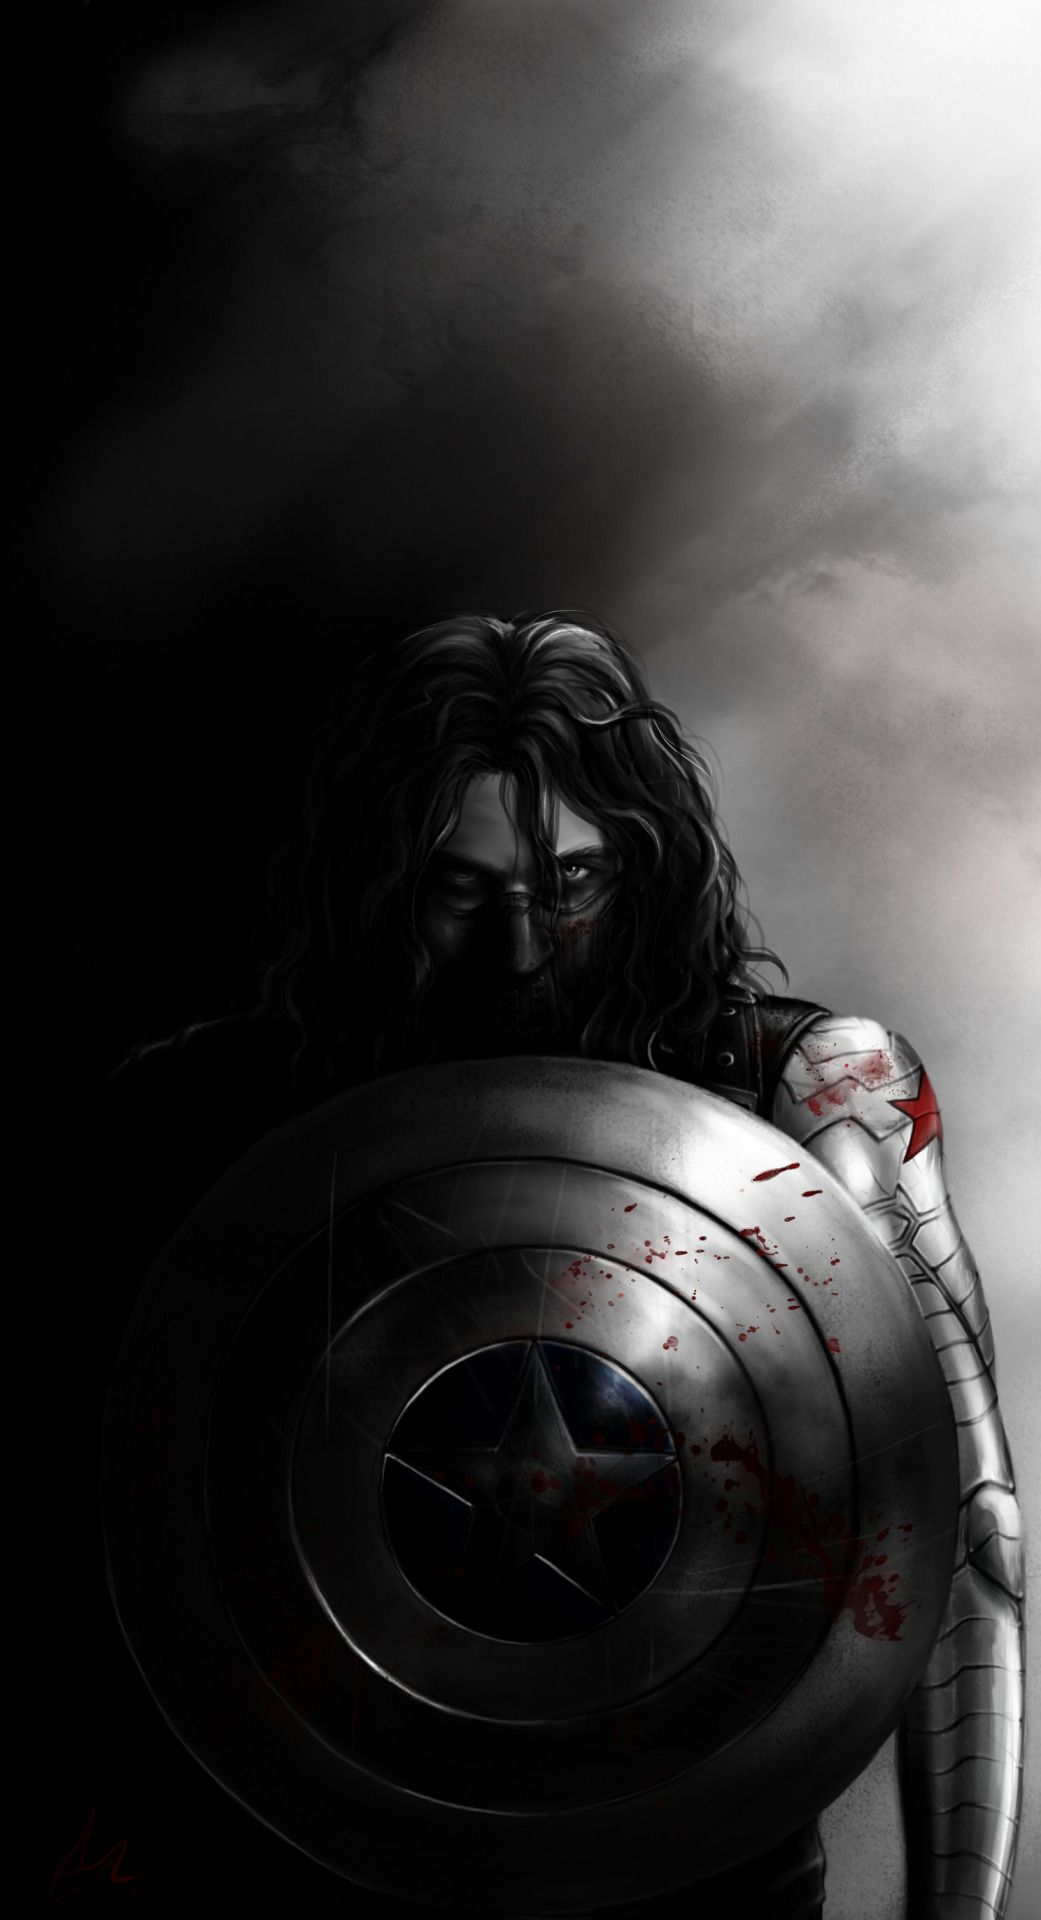 Simple Wallpaper Marvel Winter Soldier - 3ceaeee5e35d3afcf0ca111173ae426e  Collection_1002953.jpg